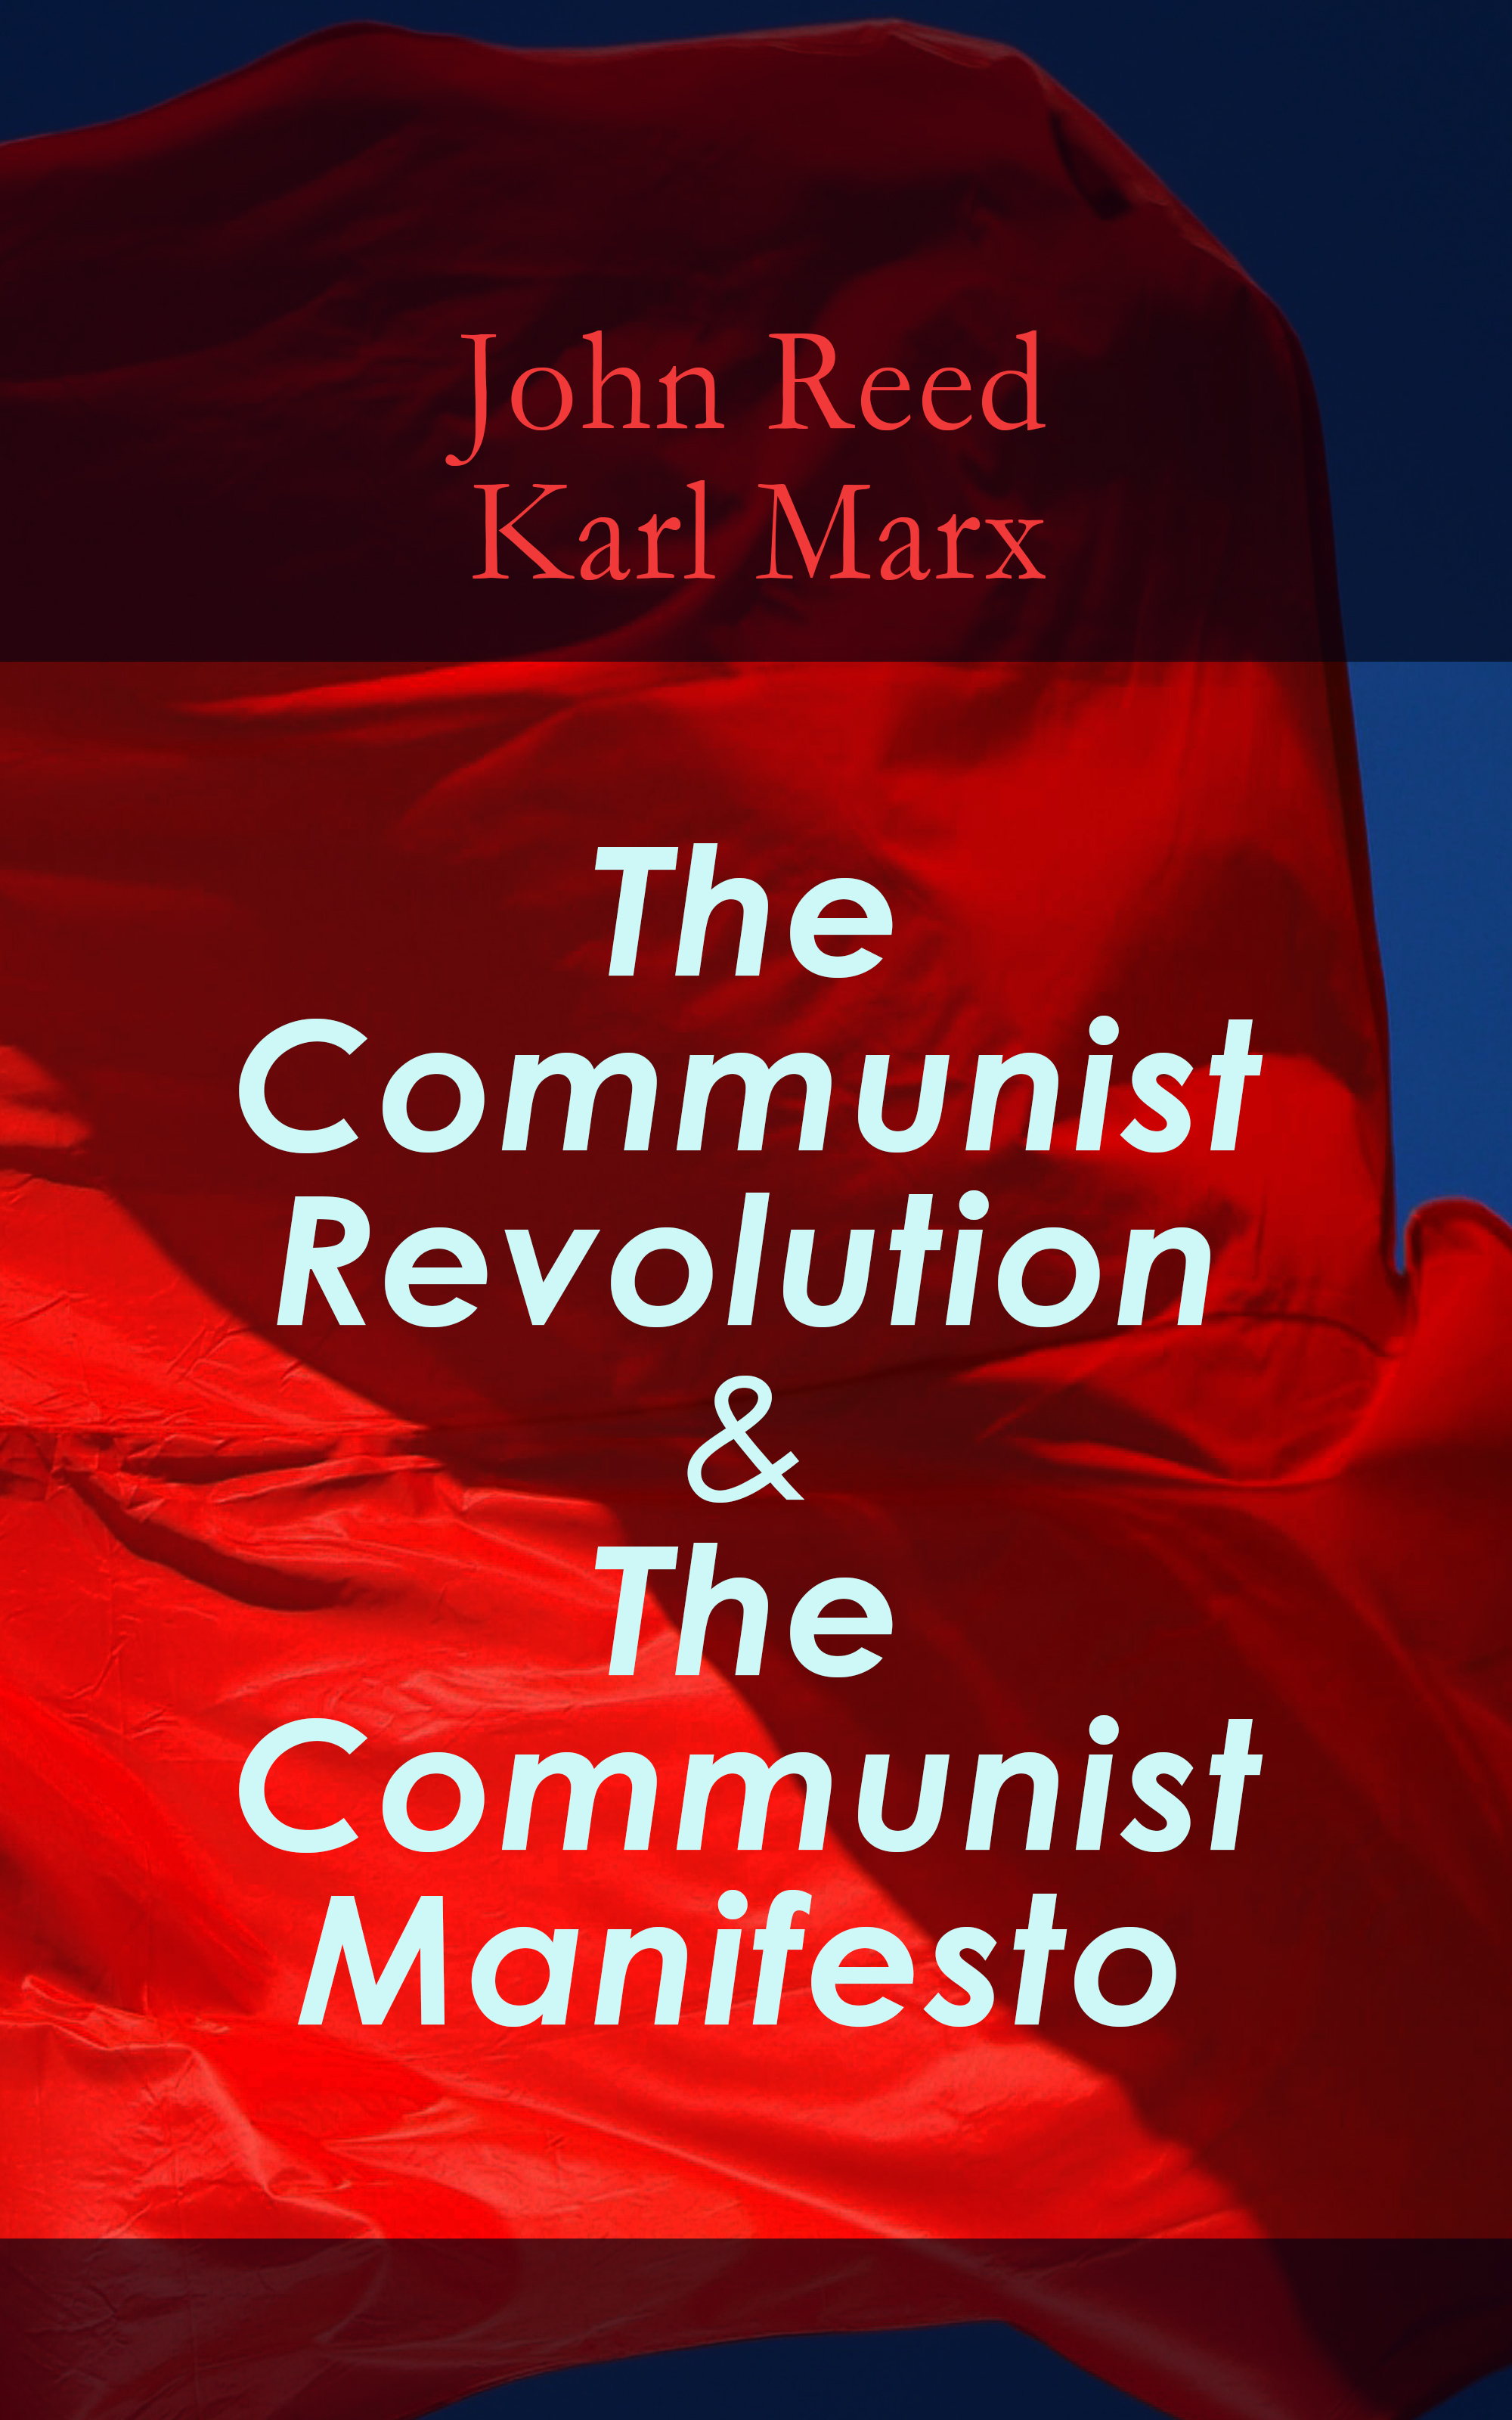 John Reed The Communist Revolution & The Communist Manifesto